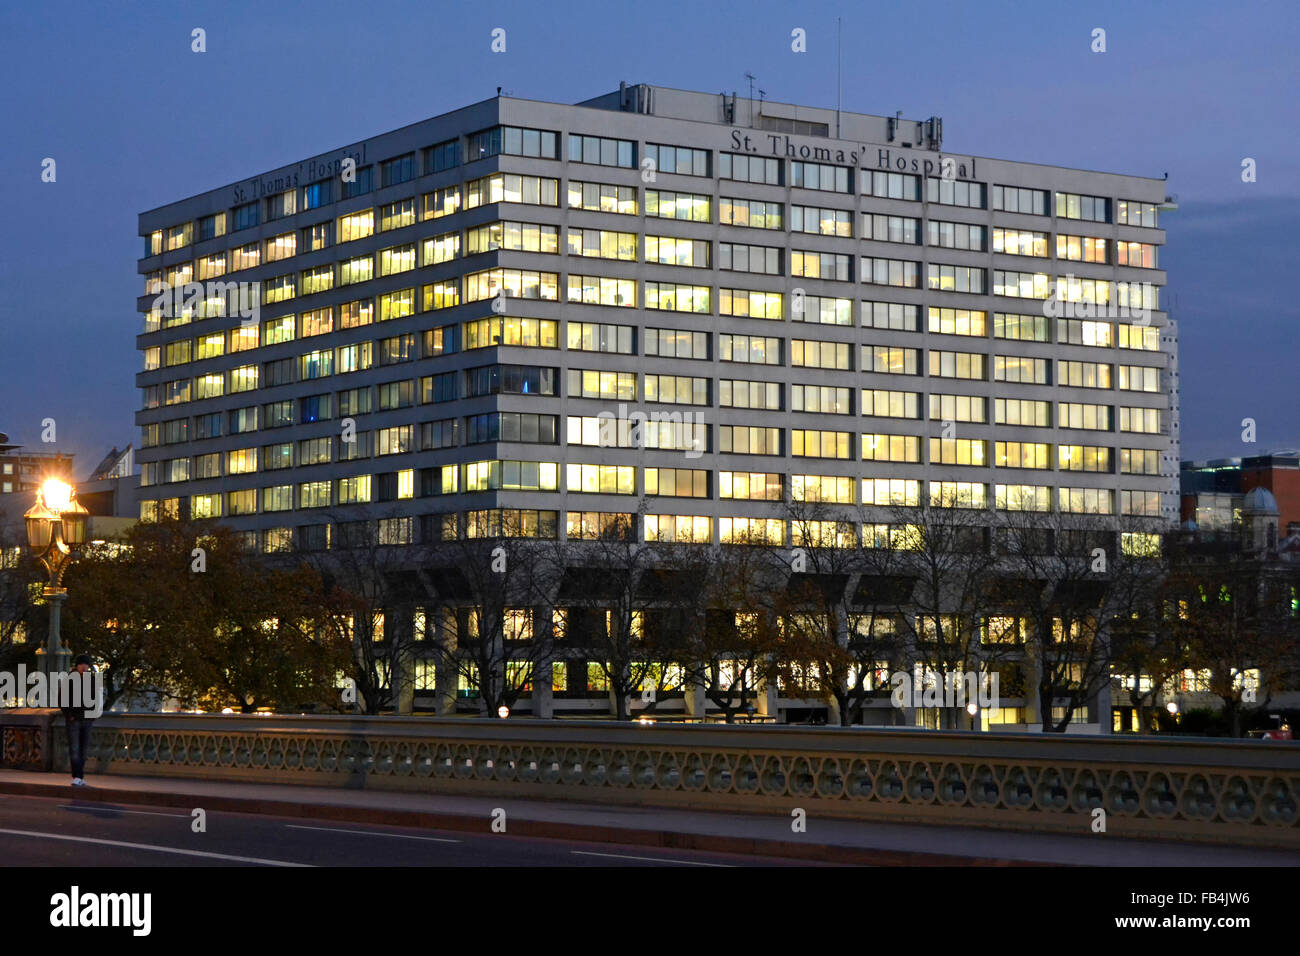 St Thomas Hospital London seen from Westminster Bridge at dusk England UK - Stock Image